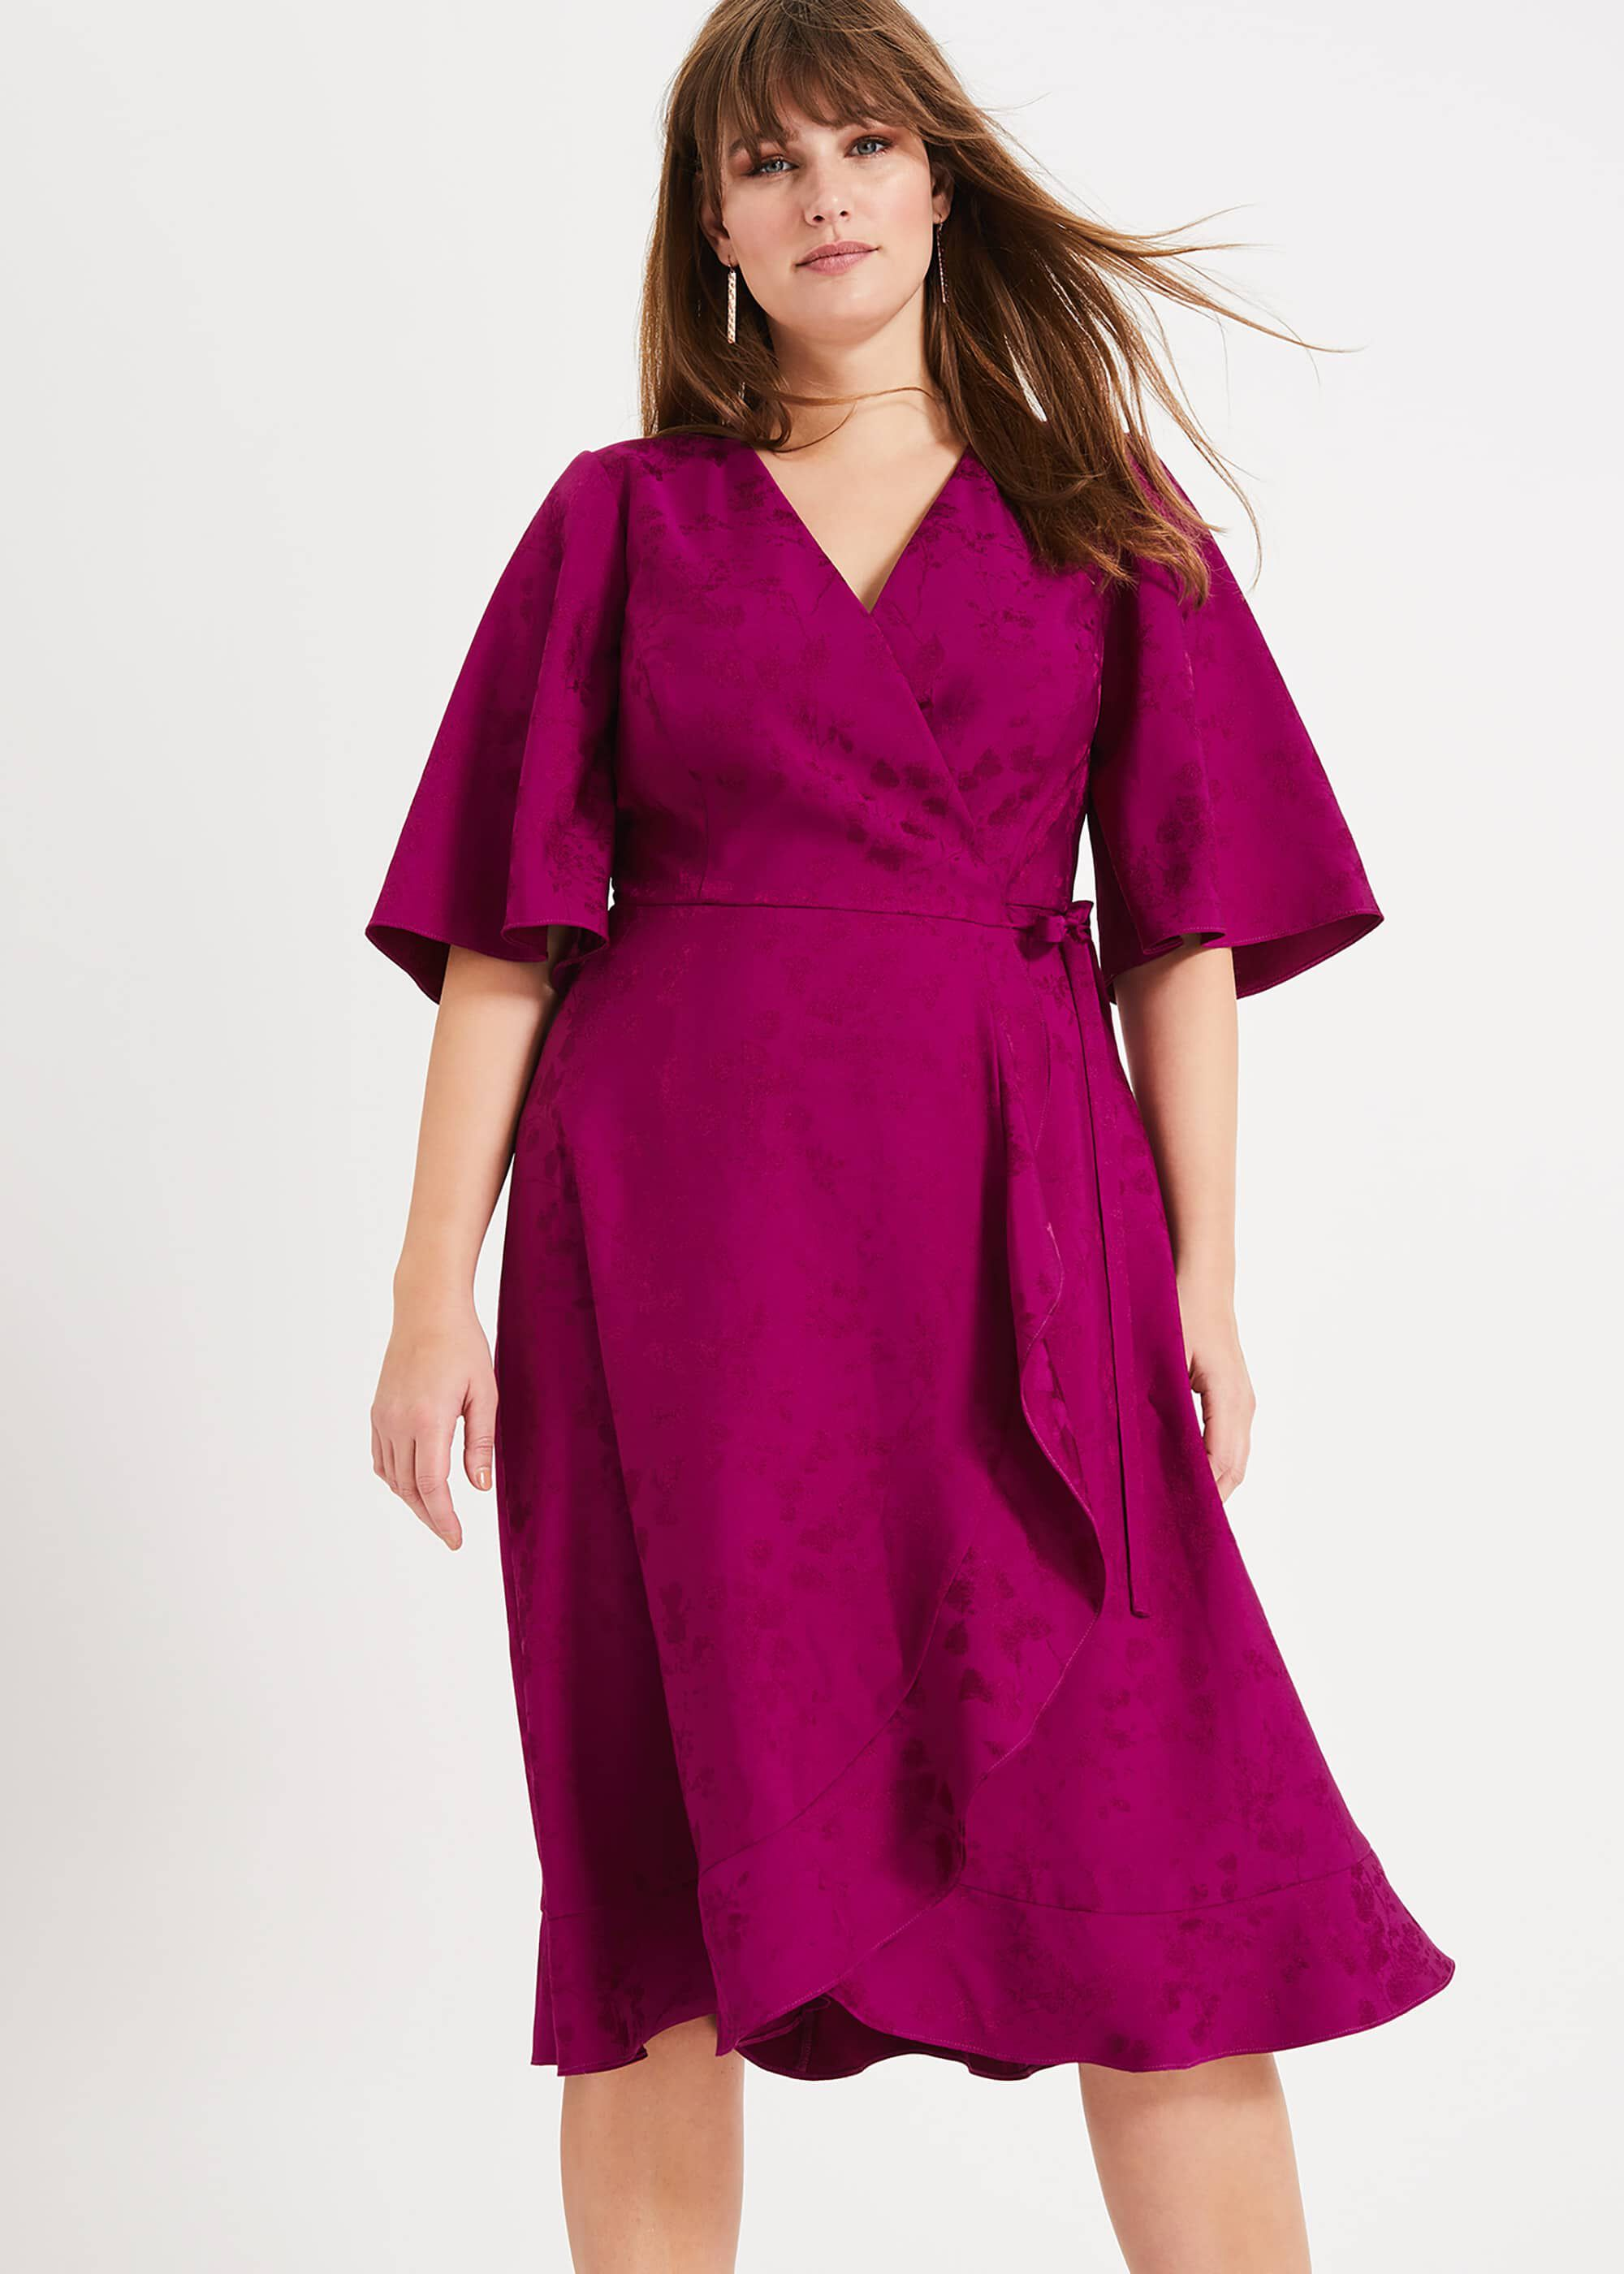 Studio 8 Nola Wrap Dress, Purple, Wrap, Occasion Dress